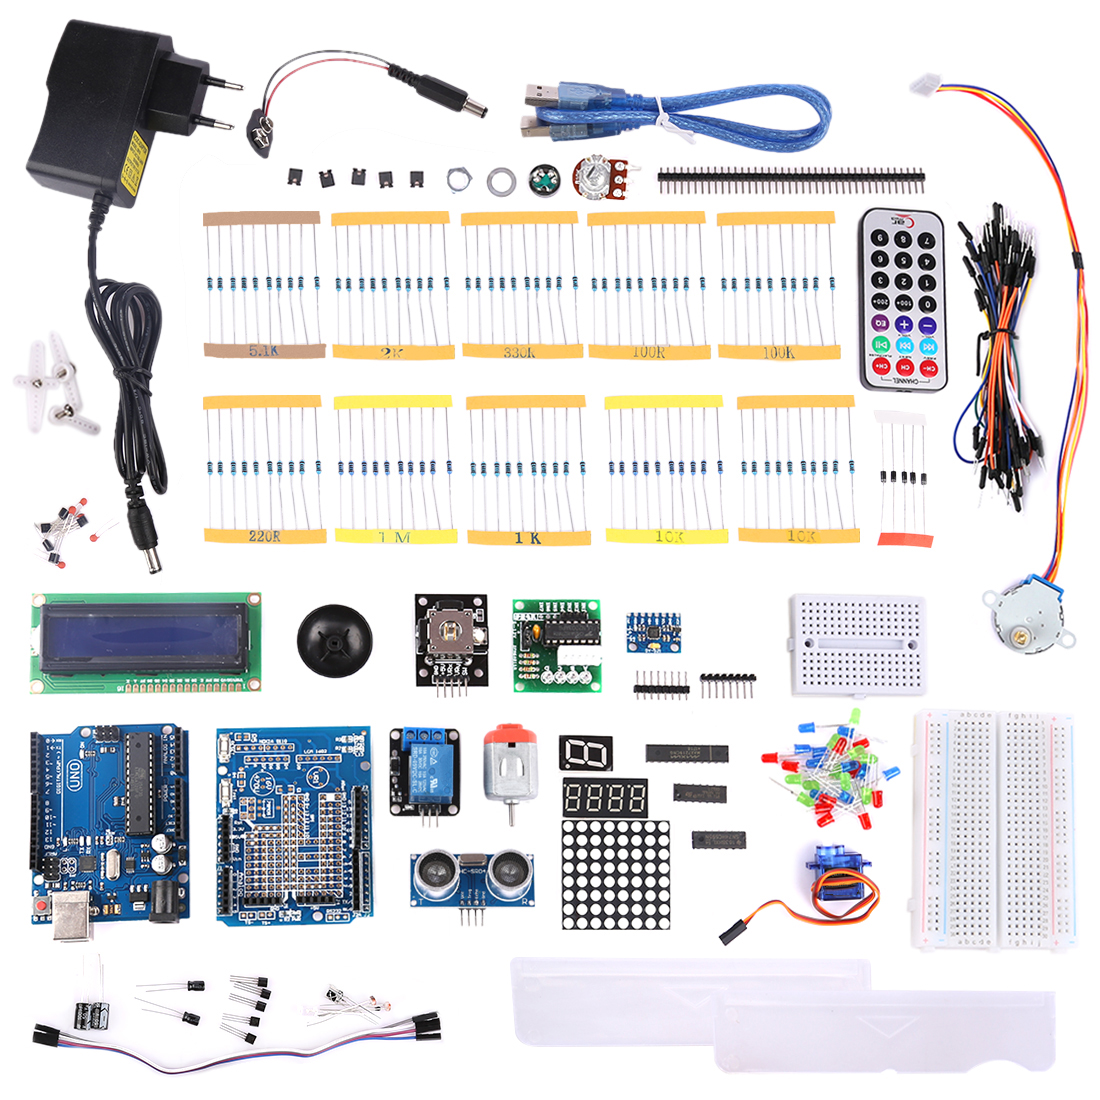 MODKIER New DIY KIT FOR UNO R3 Starter Learning Set For Arduino High Tech Programmable Toys /- US/EU Plug